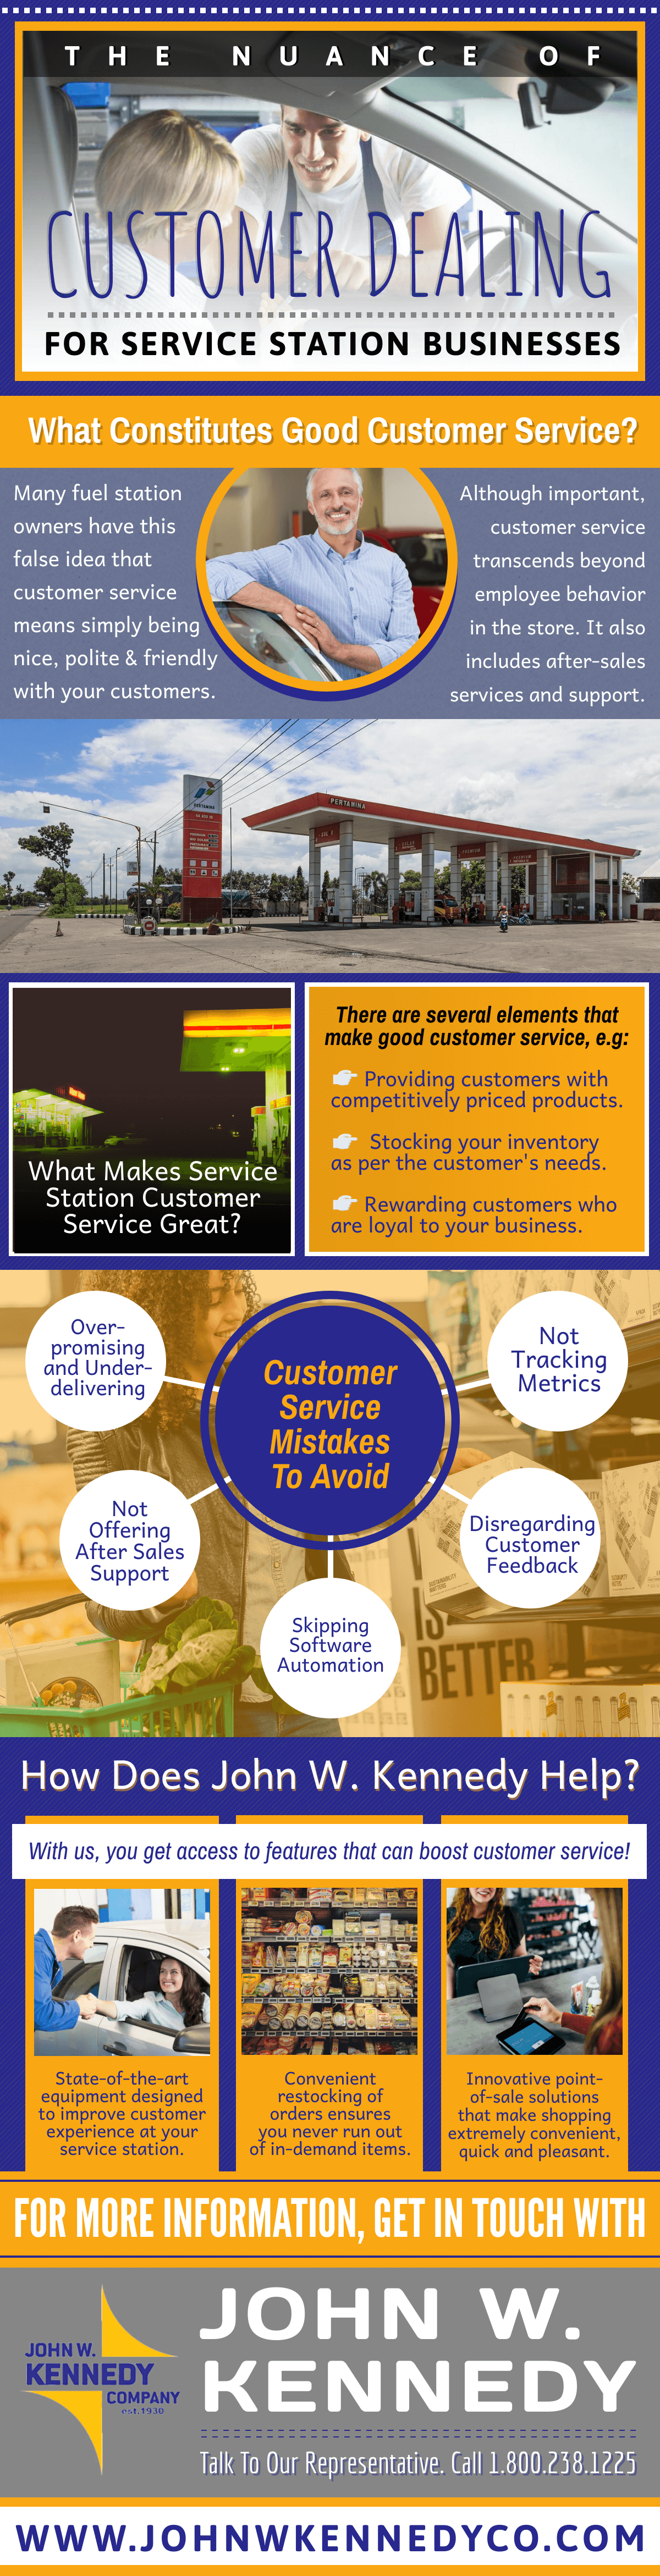 The-Nuance-of-Customer-Dealing-For-Service-Station-Businesses